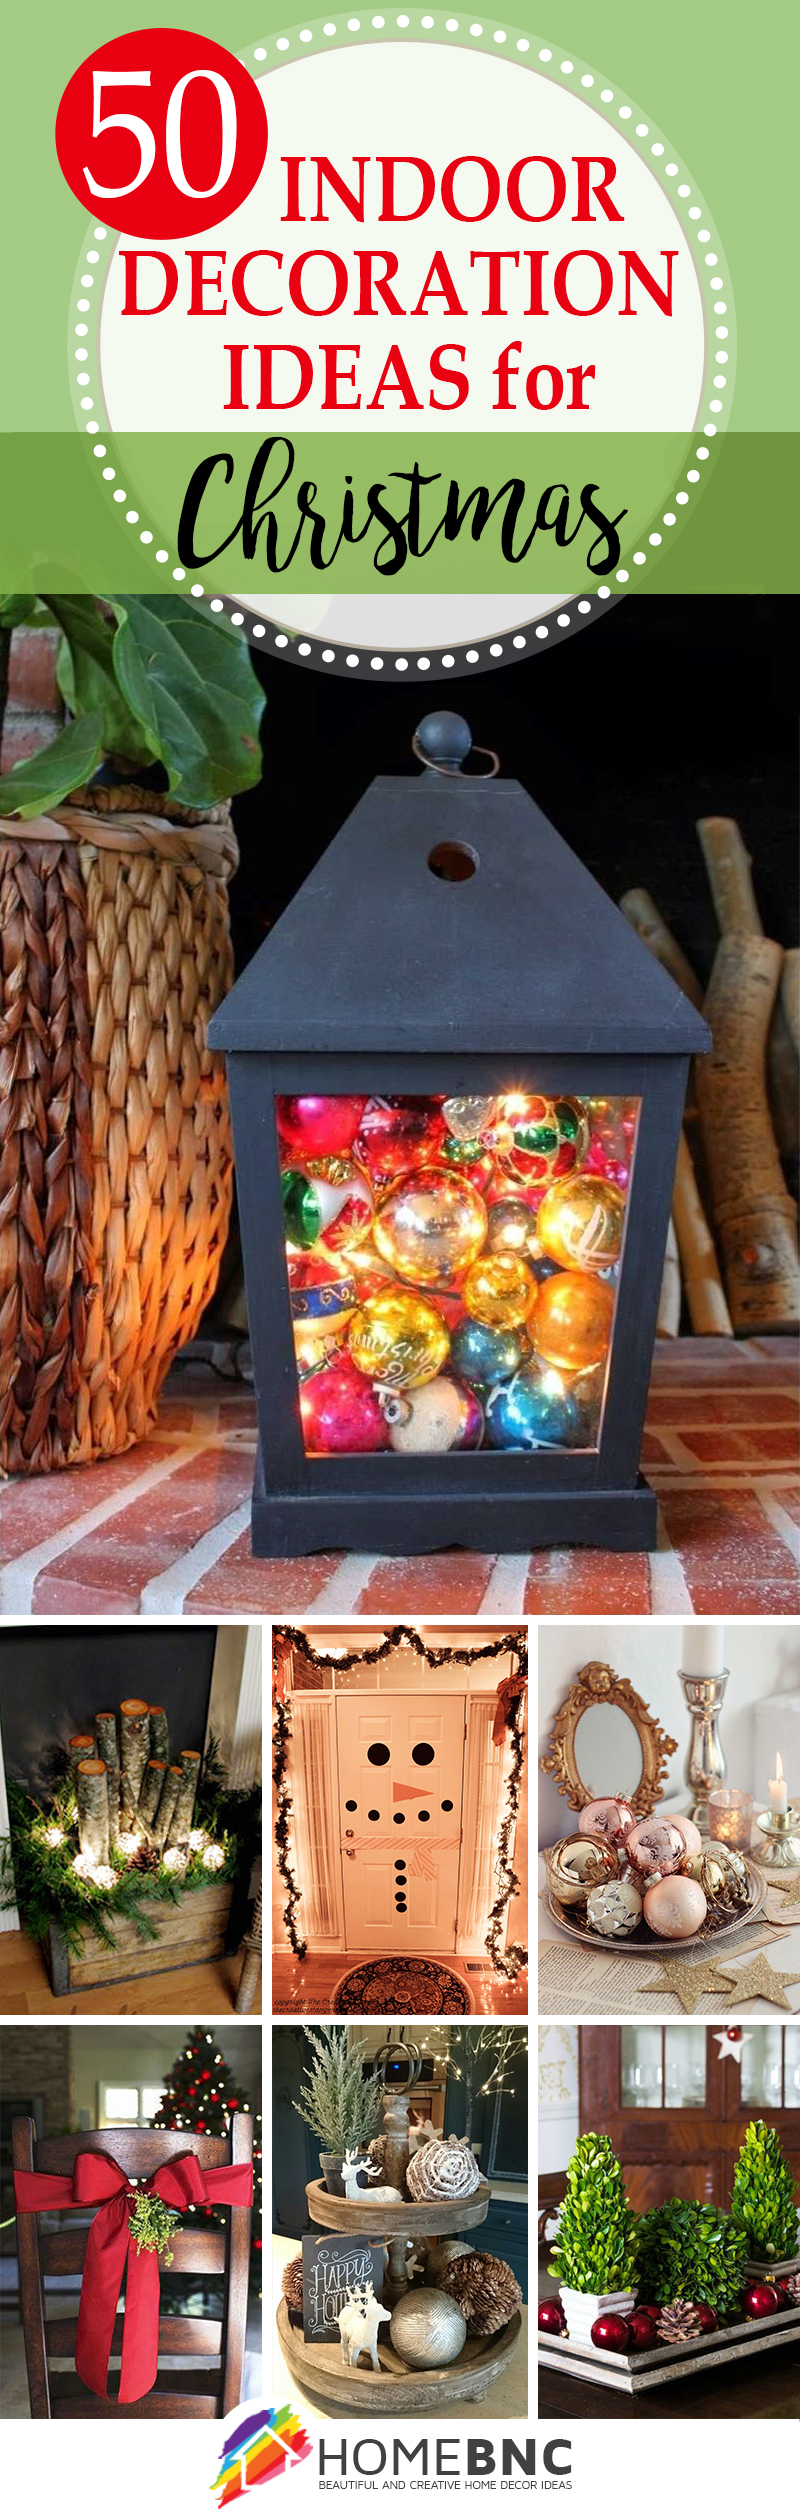 50 best indoor decoration ideas for christmas in 2017 for Pictures of indoor christmas decorations